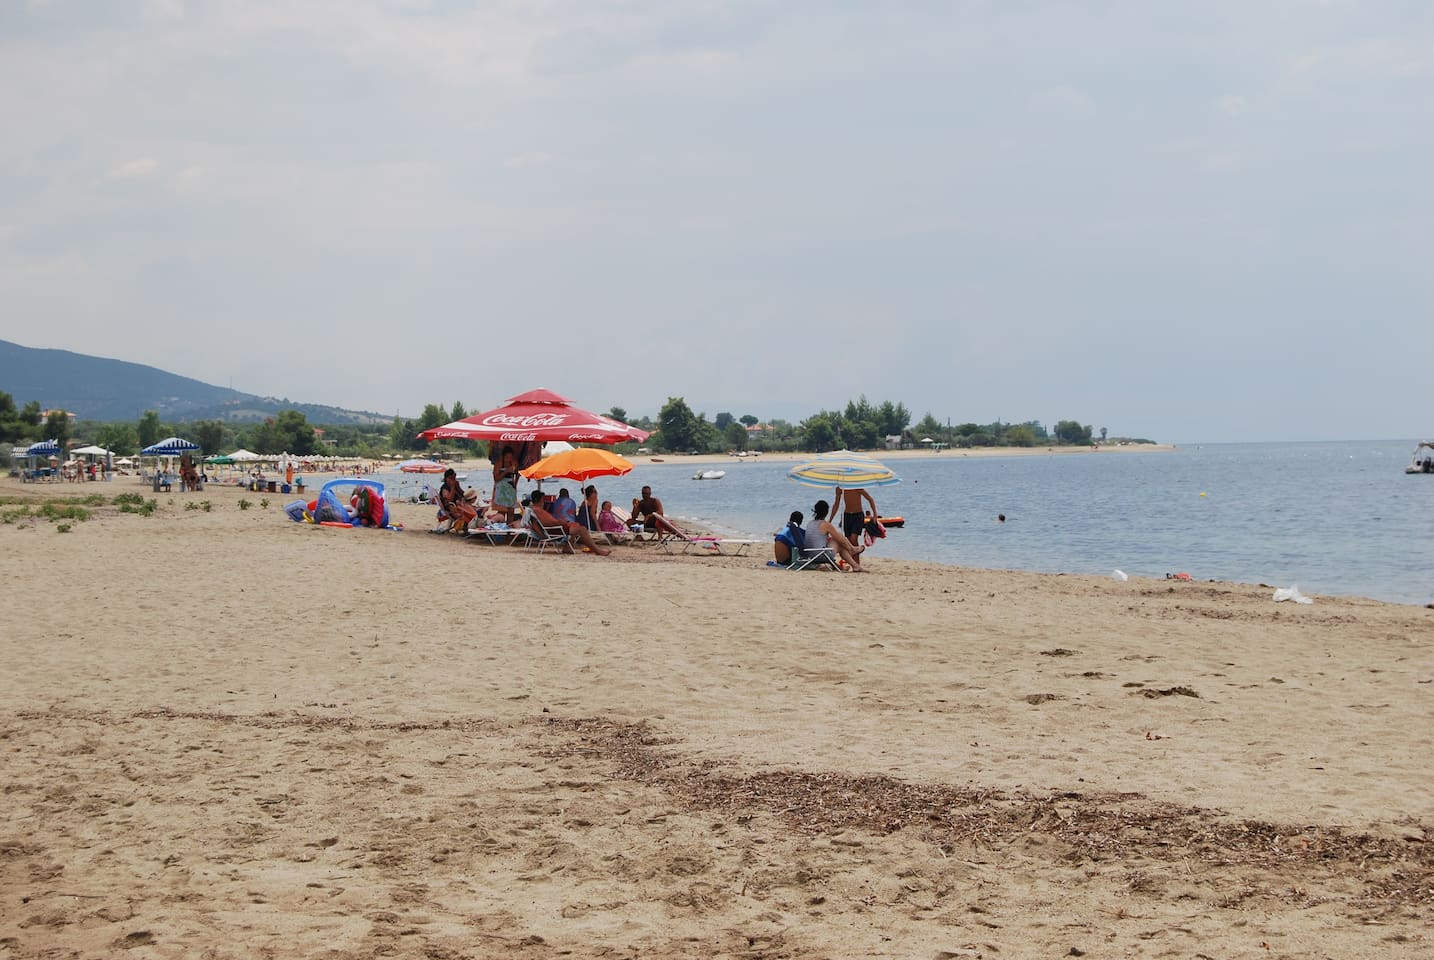 The beach in front of the residence complex